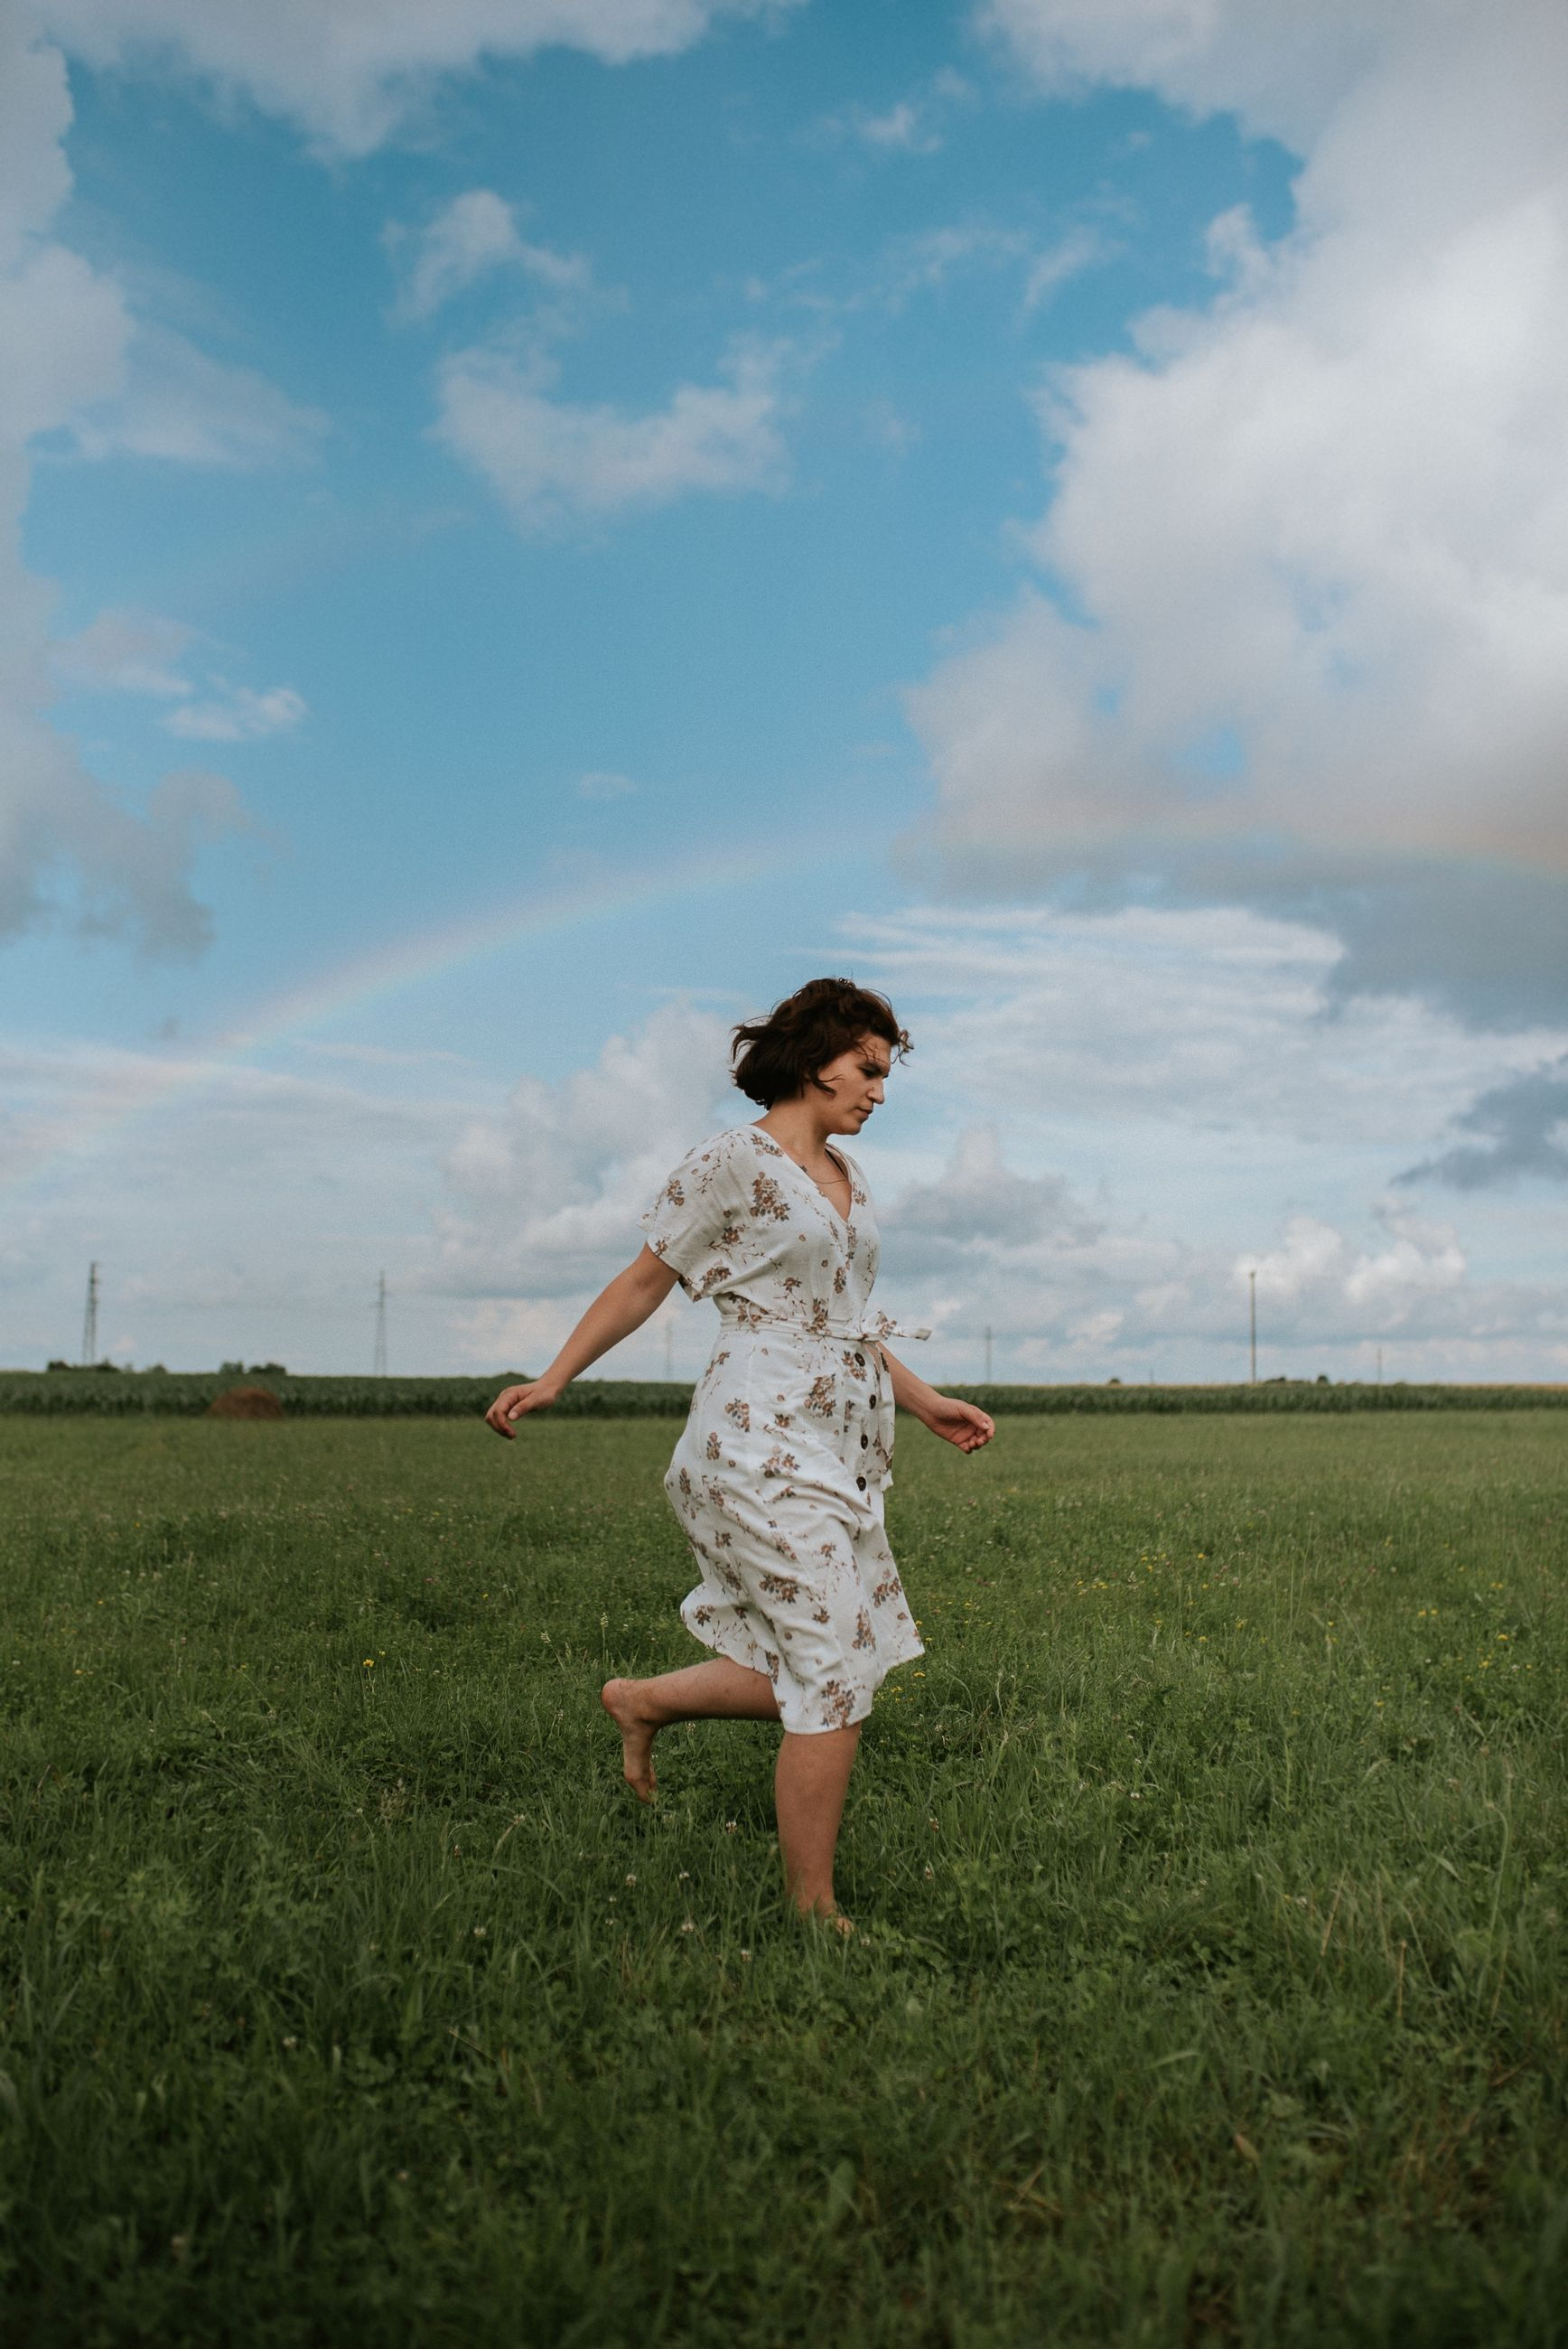 cloud - sky, field, grass, land, sky, one person, full length, plant, women, casual clothing, standing, nature, environment, leisure activity, landscape, running, child, childhood, day, real people, outdoors